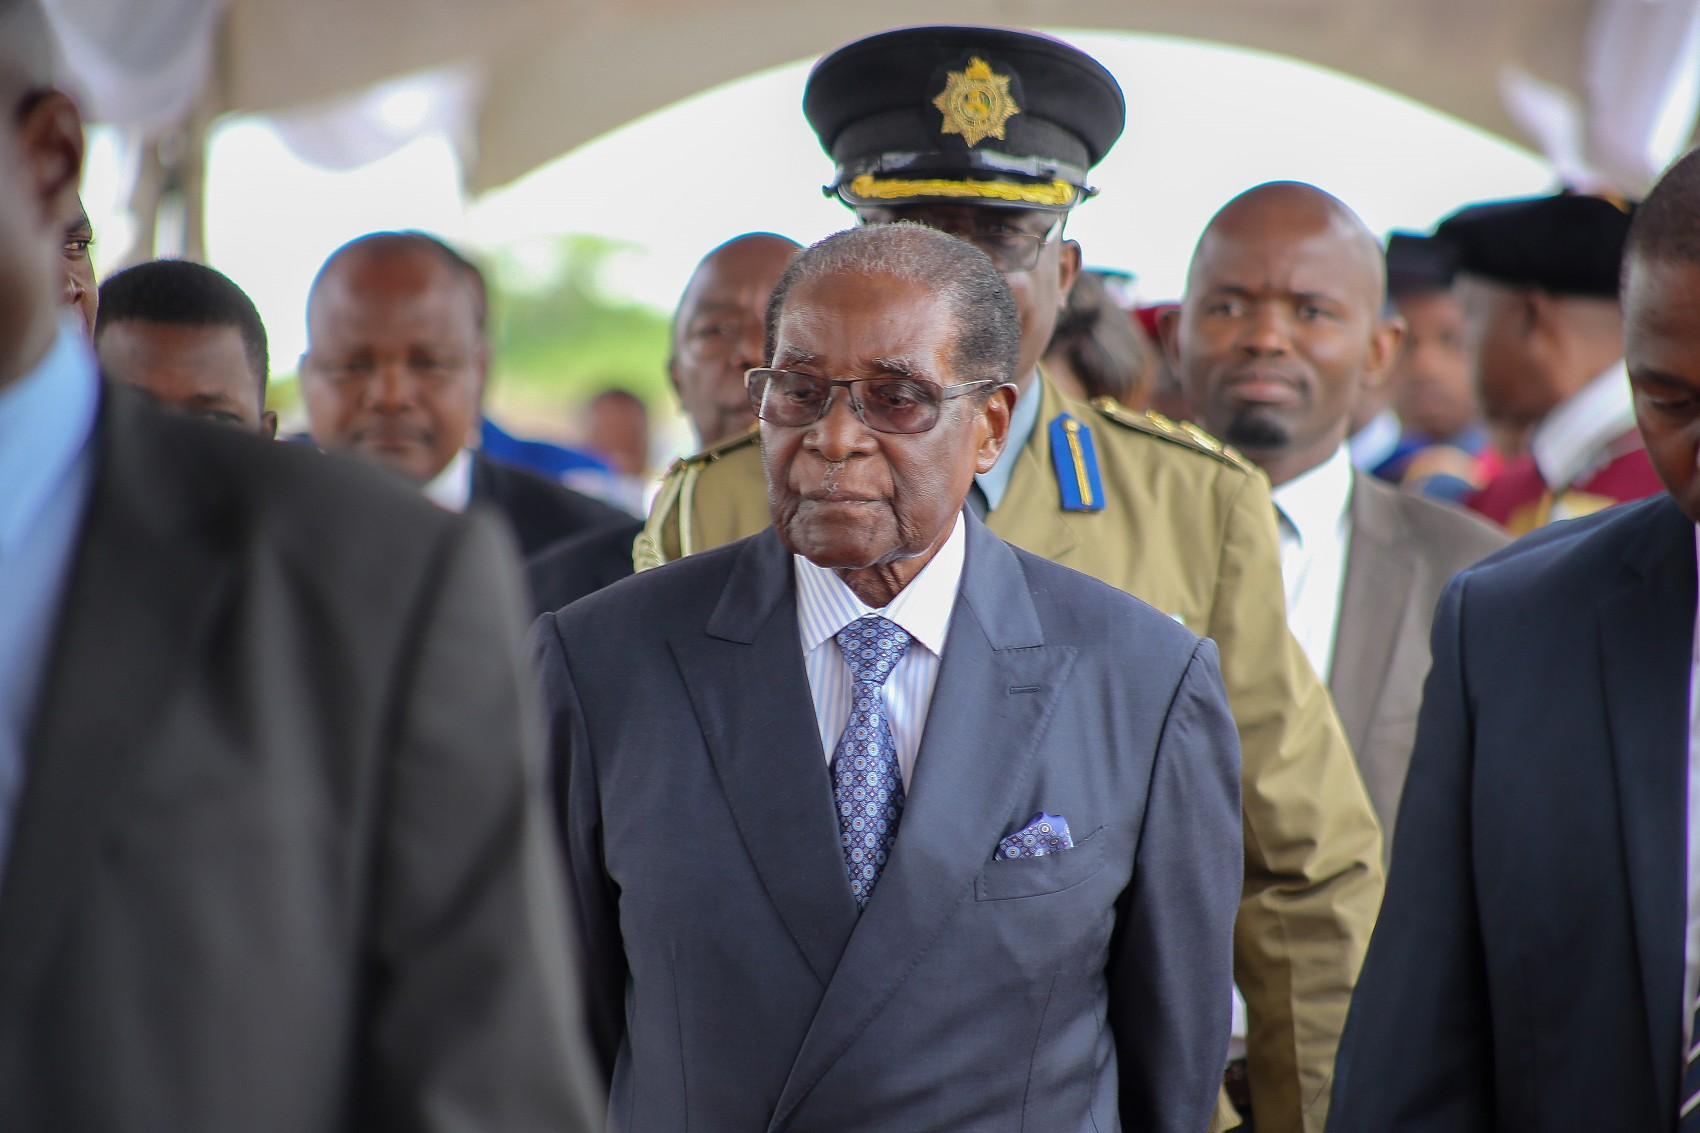 Where is Zimbabwe headed after shift?